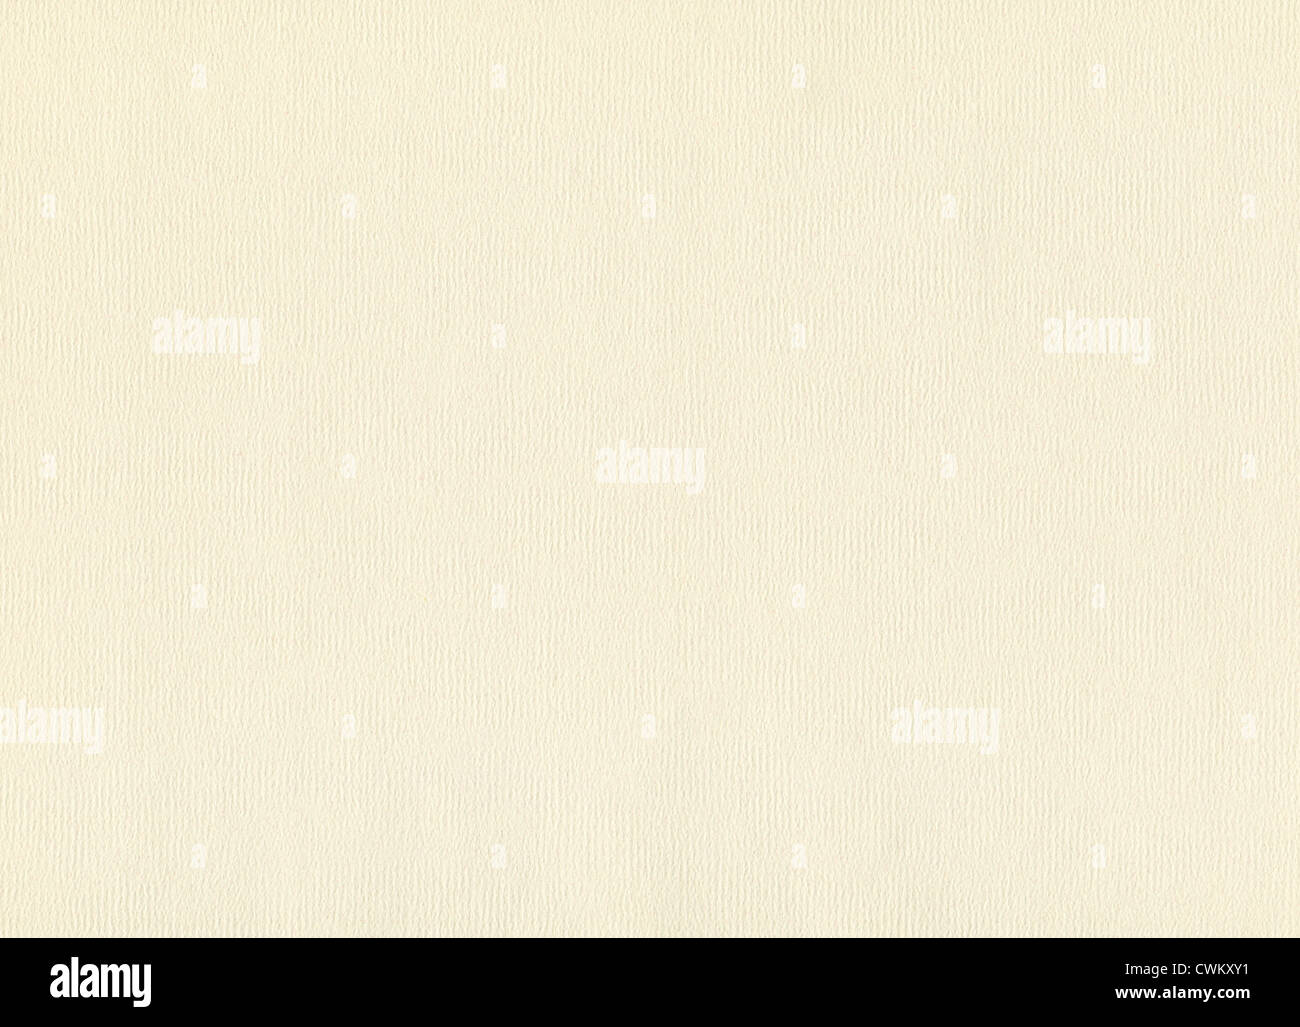 Watercolor paper texture, abstract blank beige material - Stock Image